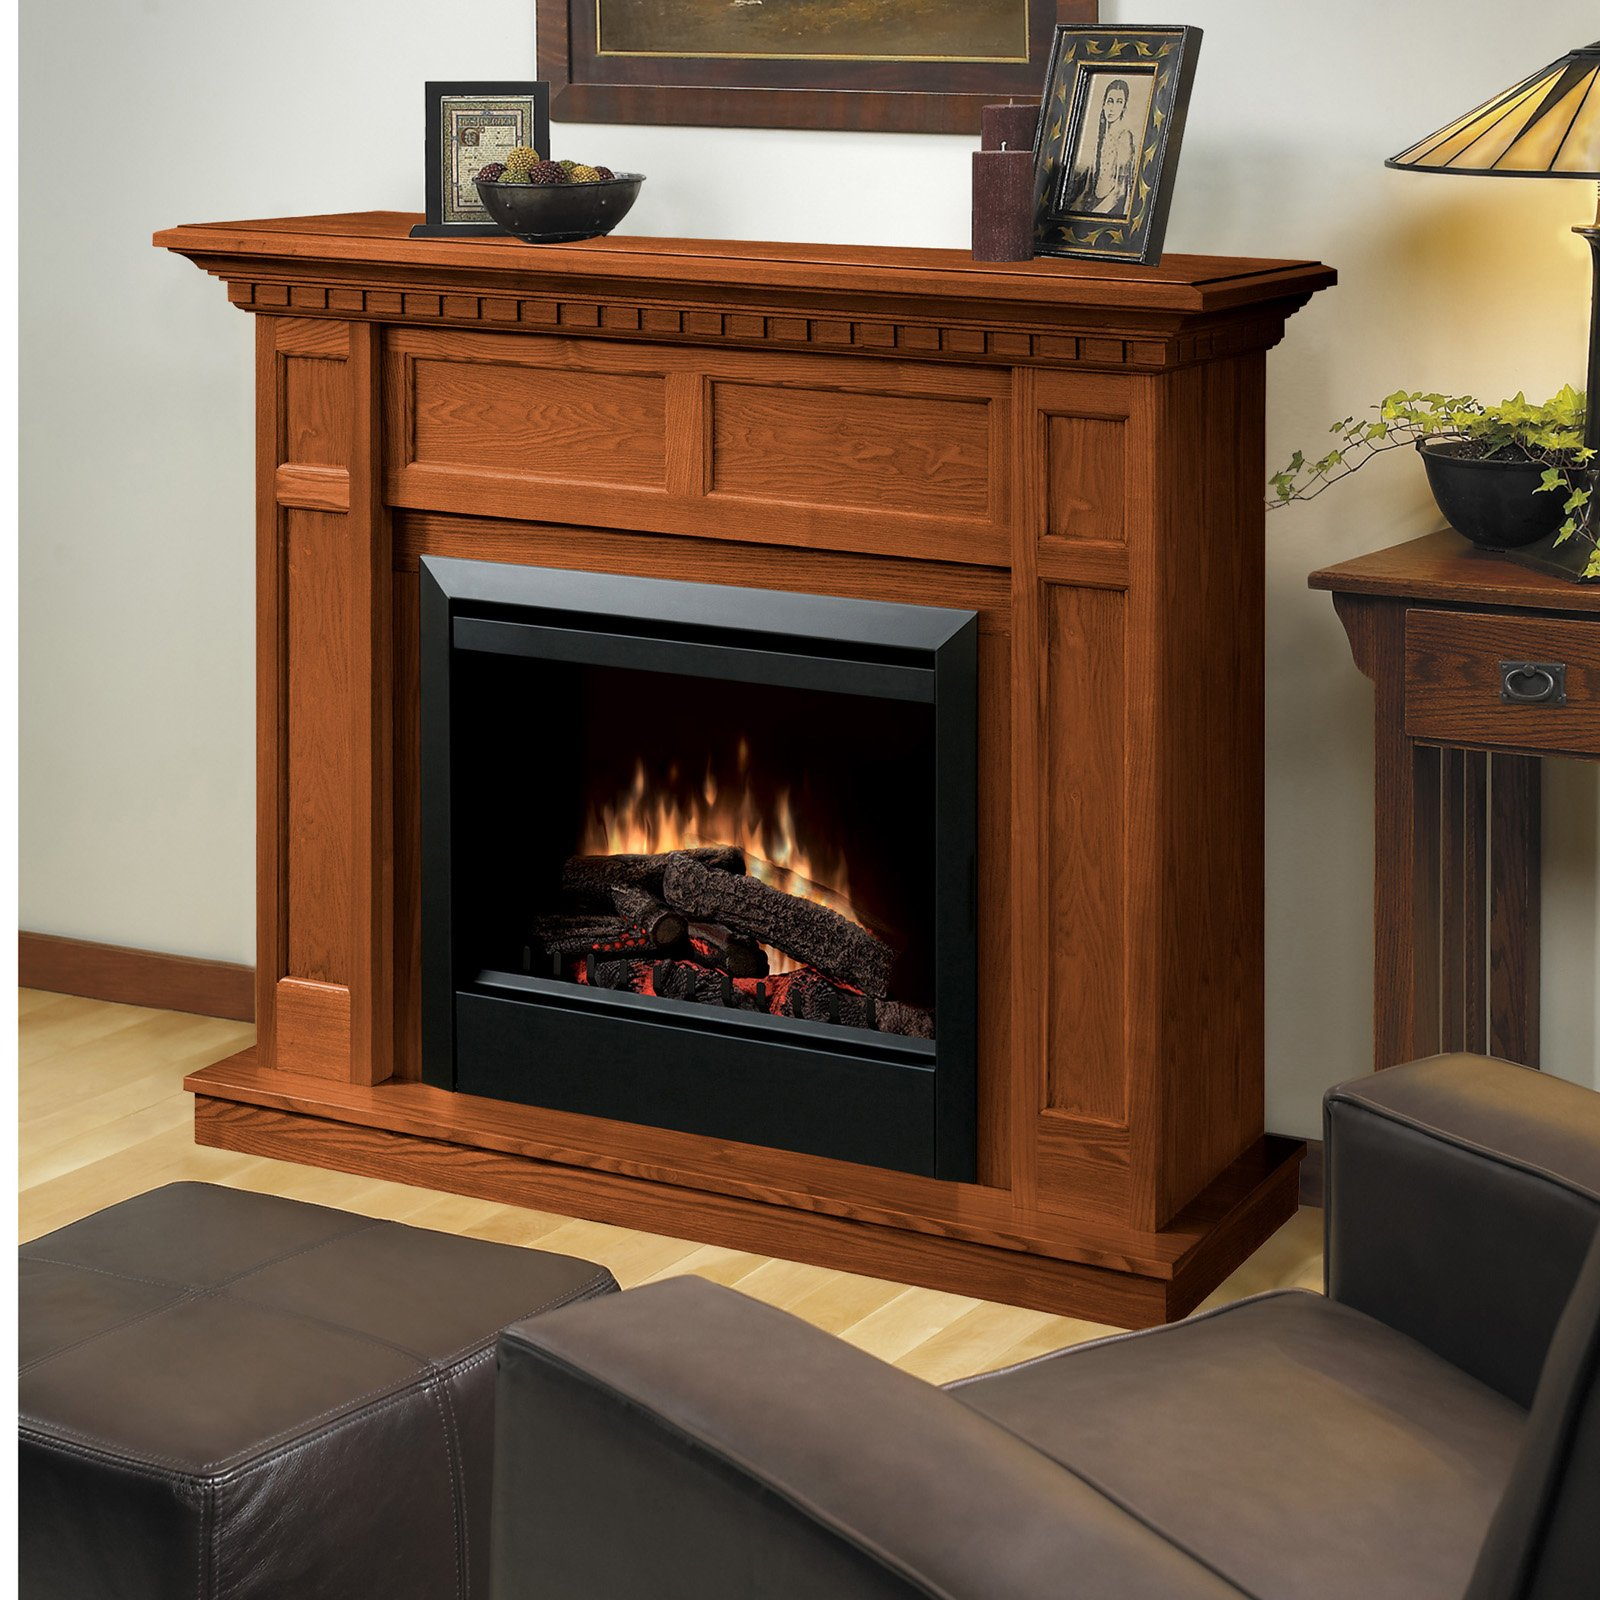 cozy black framed dimplex electric fireplaces with wood mantel kit before the white wall matched with wooden floor plus leather sofa for family room decor ideas